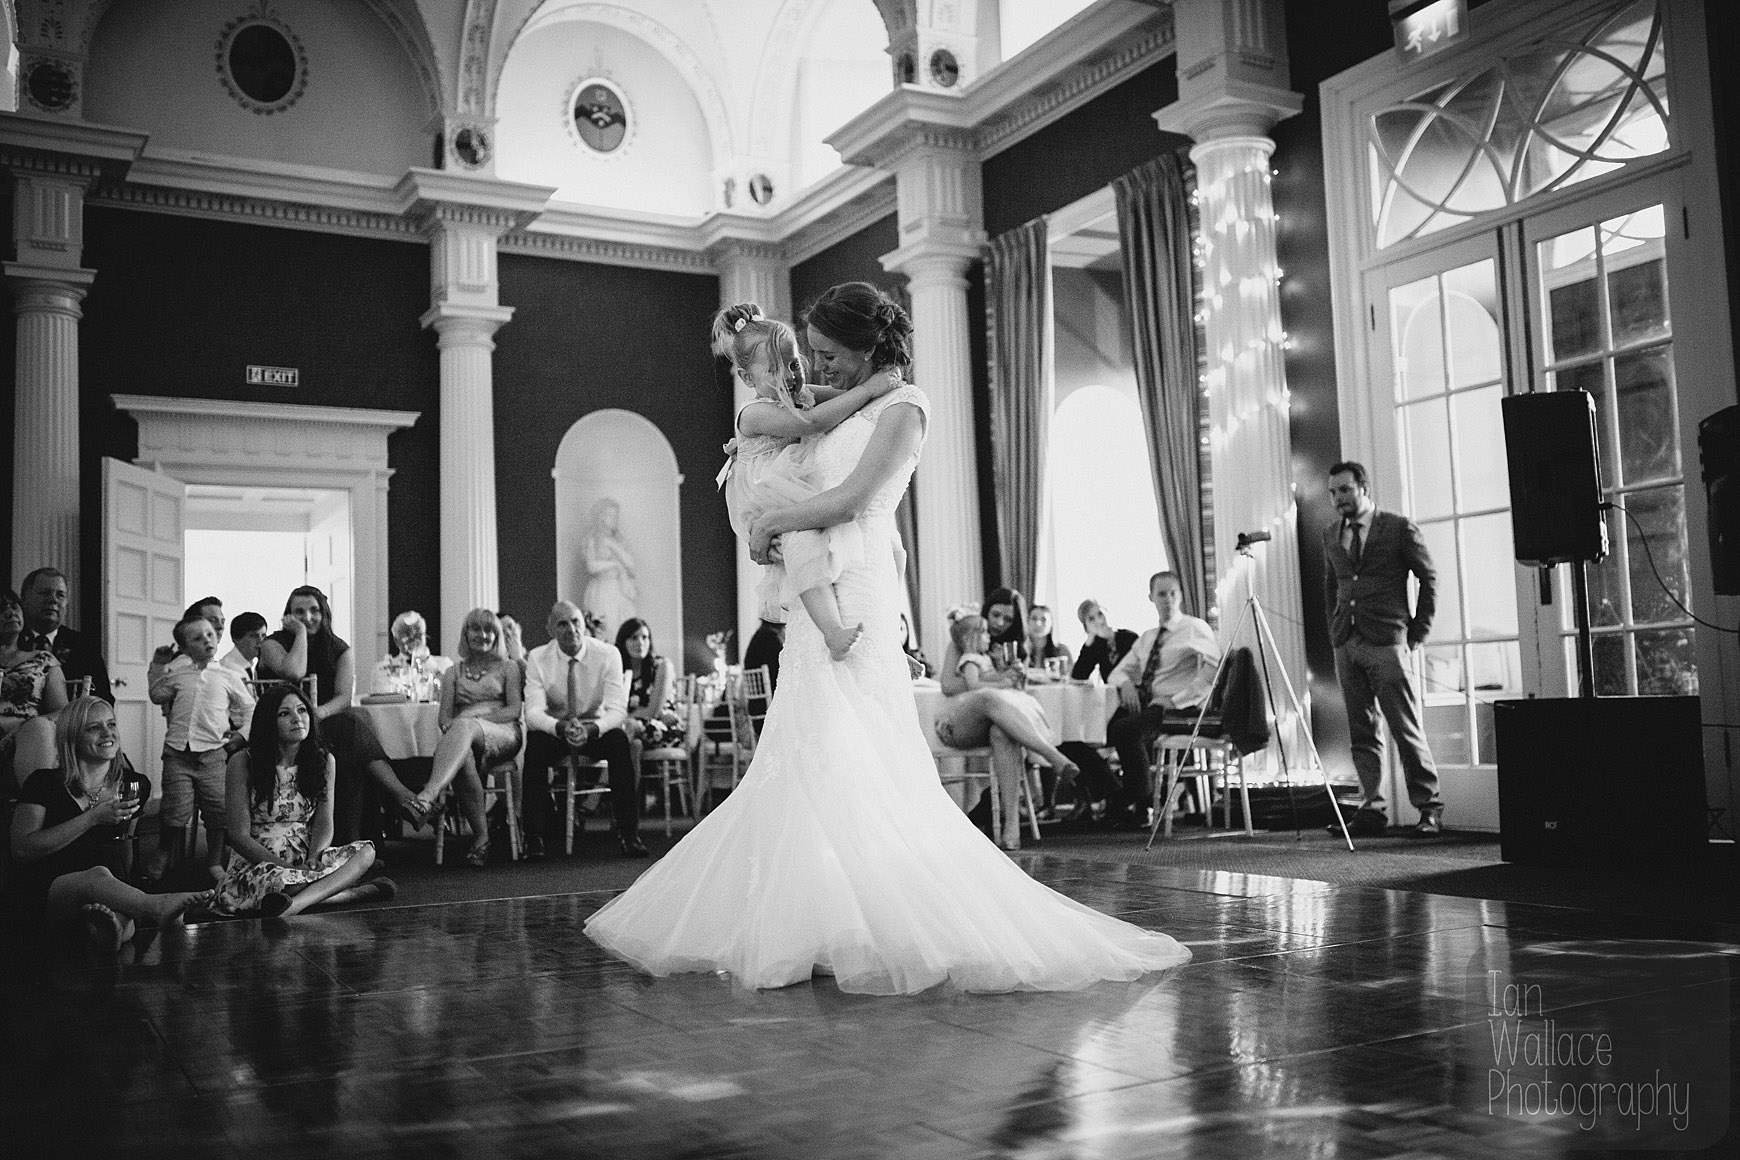 The bride spinning like a princess with a flower-girl on the dance floor